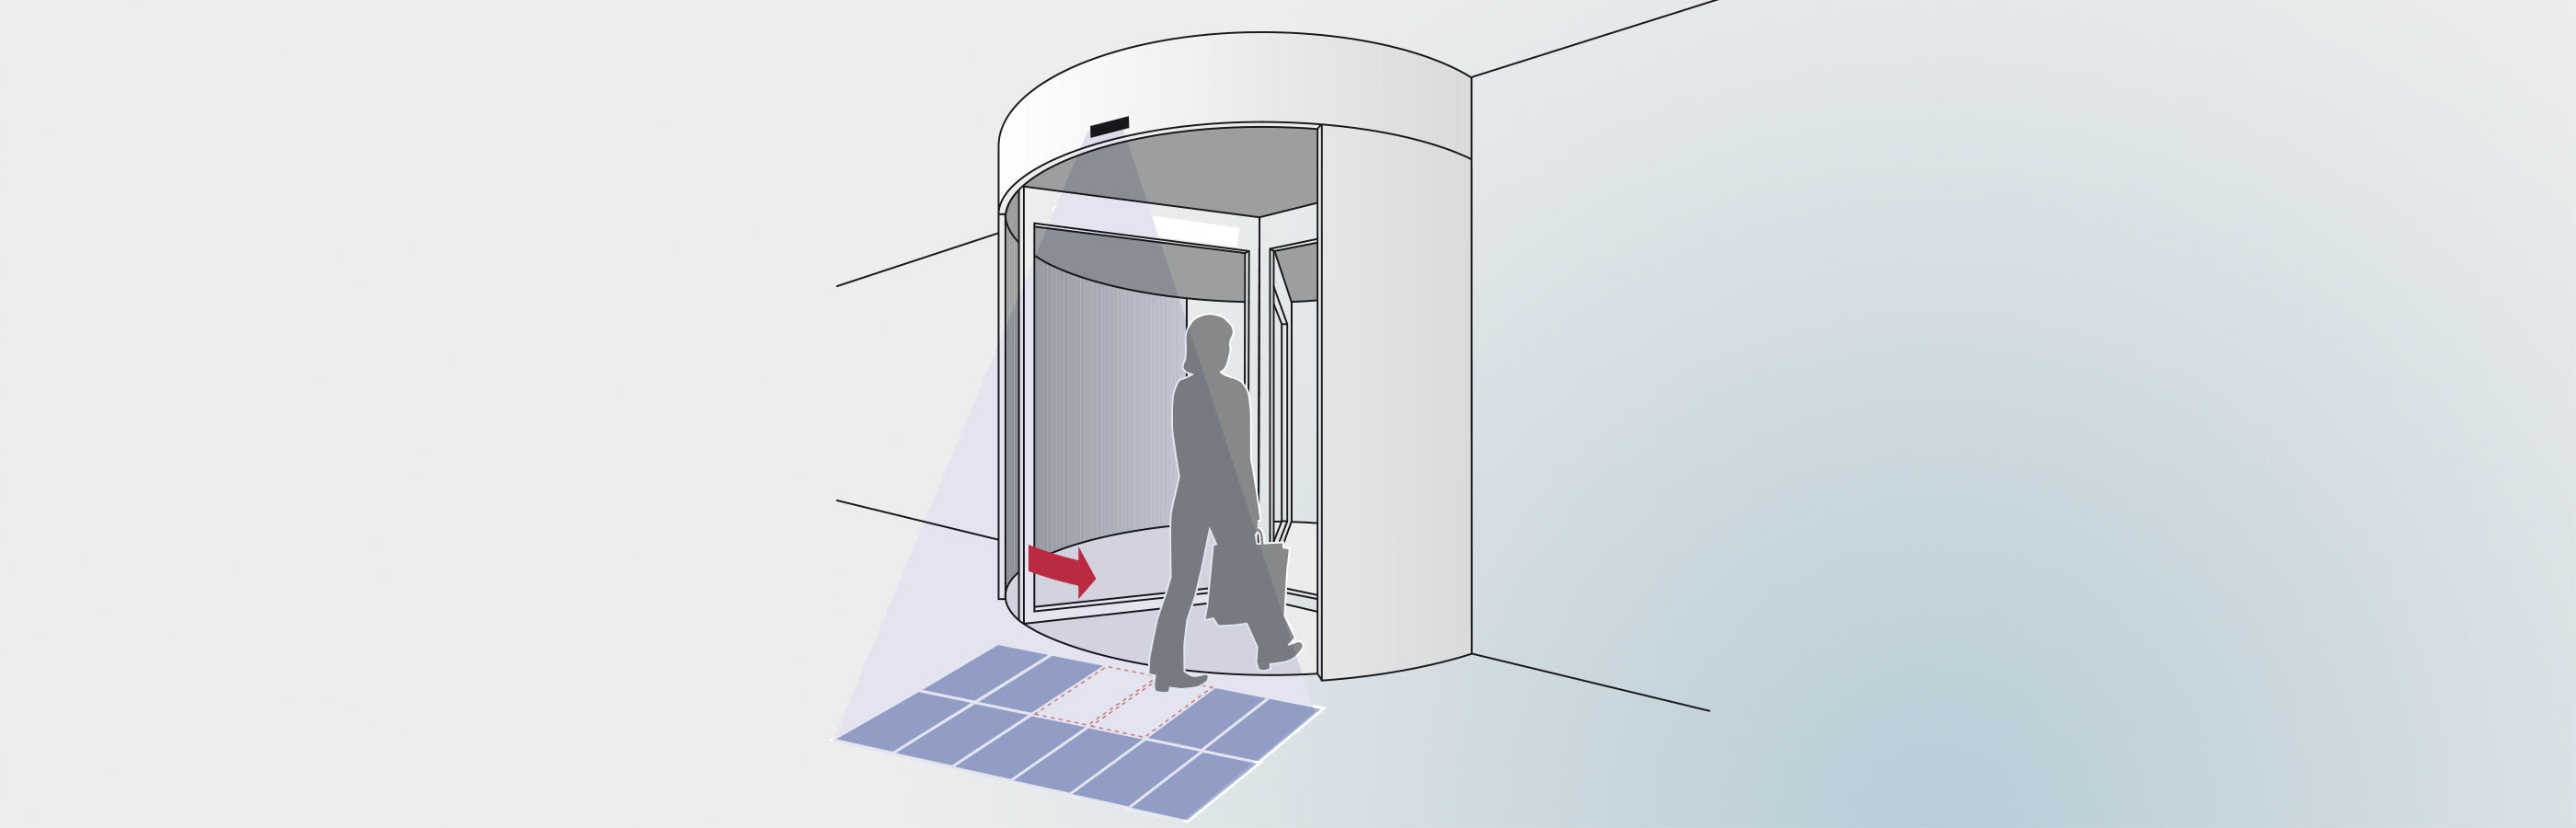 PIR 20 passive infrared motion detector activates a revolving door